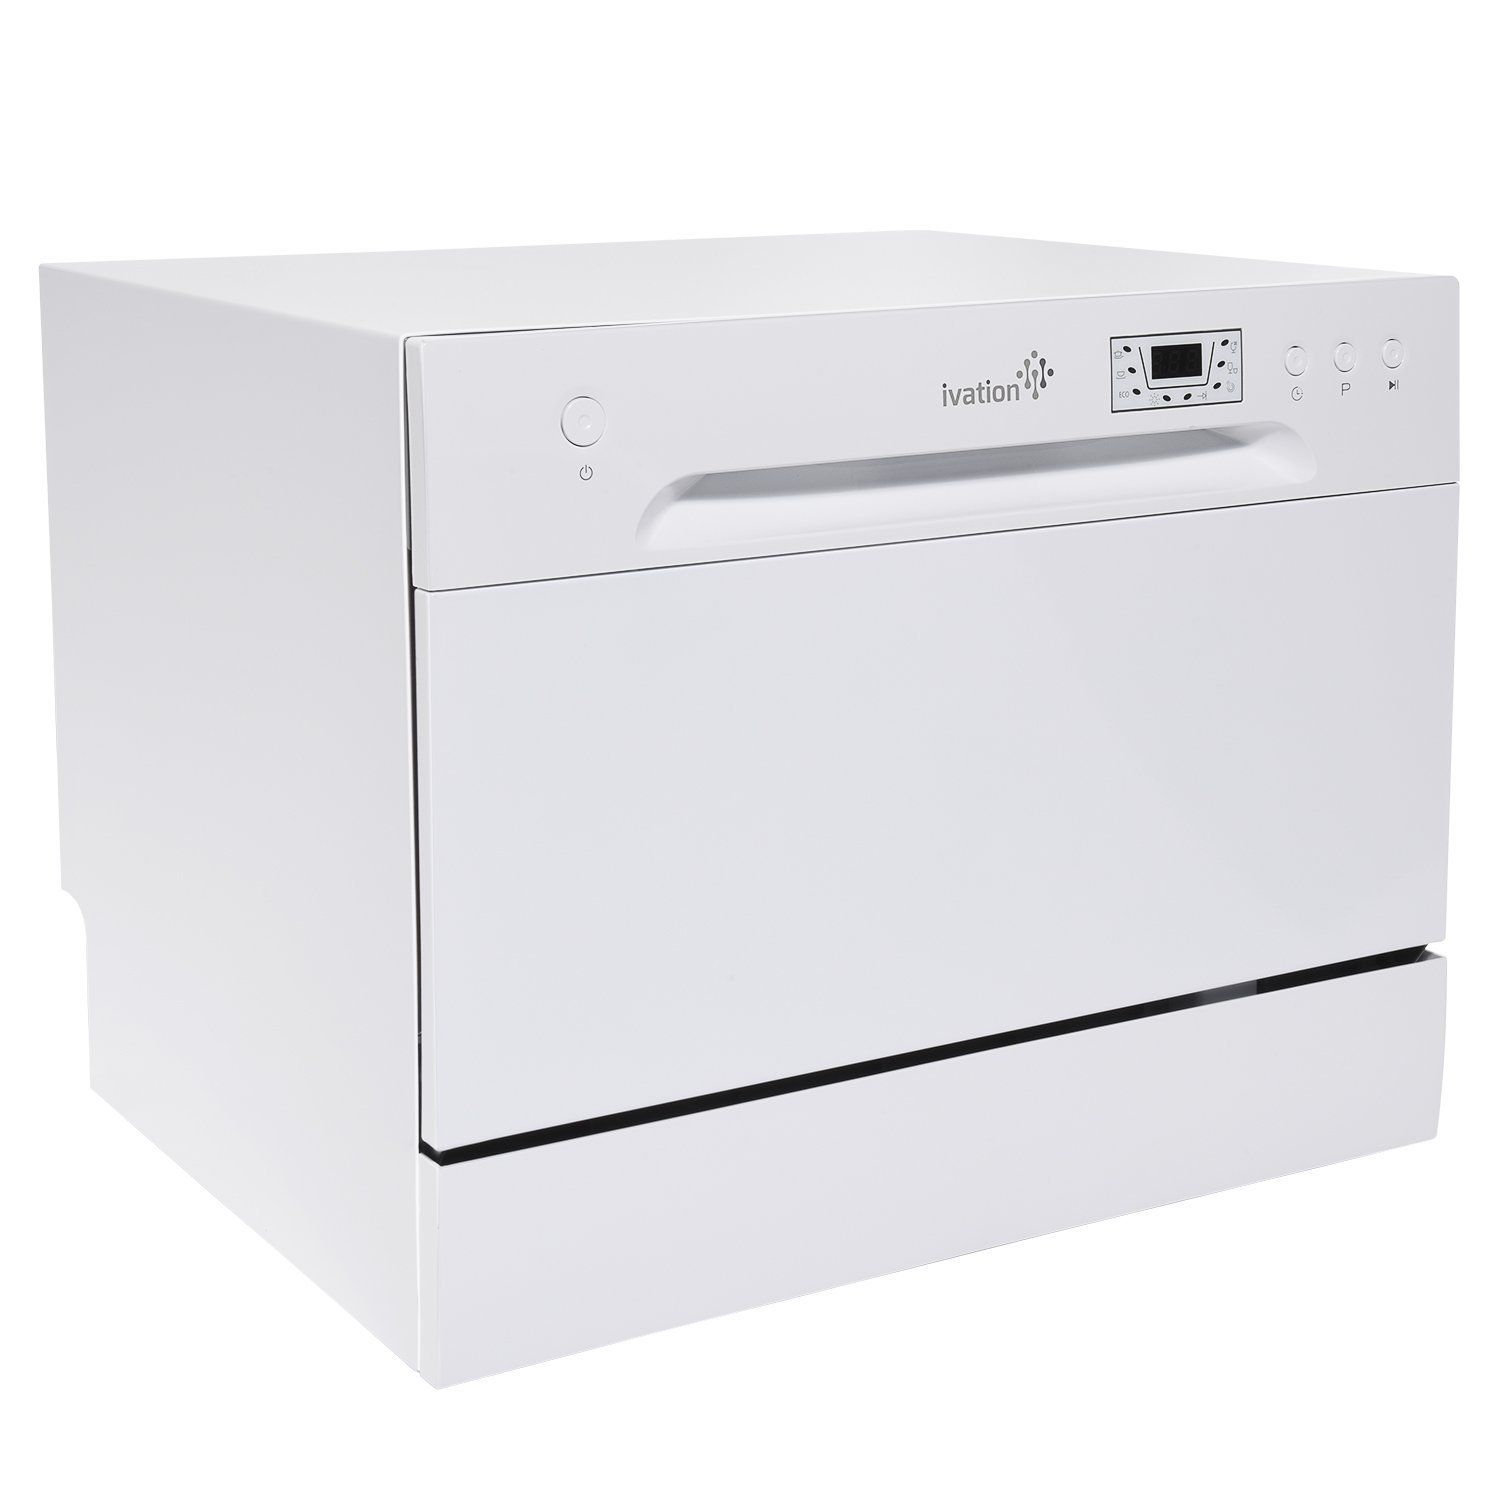 Best Off Grid Dishwasher Options When Water Is Limited Compact Dishwasher Countertop Dishwasher Portable Dishwasher